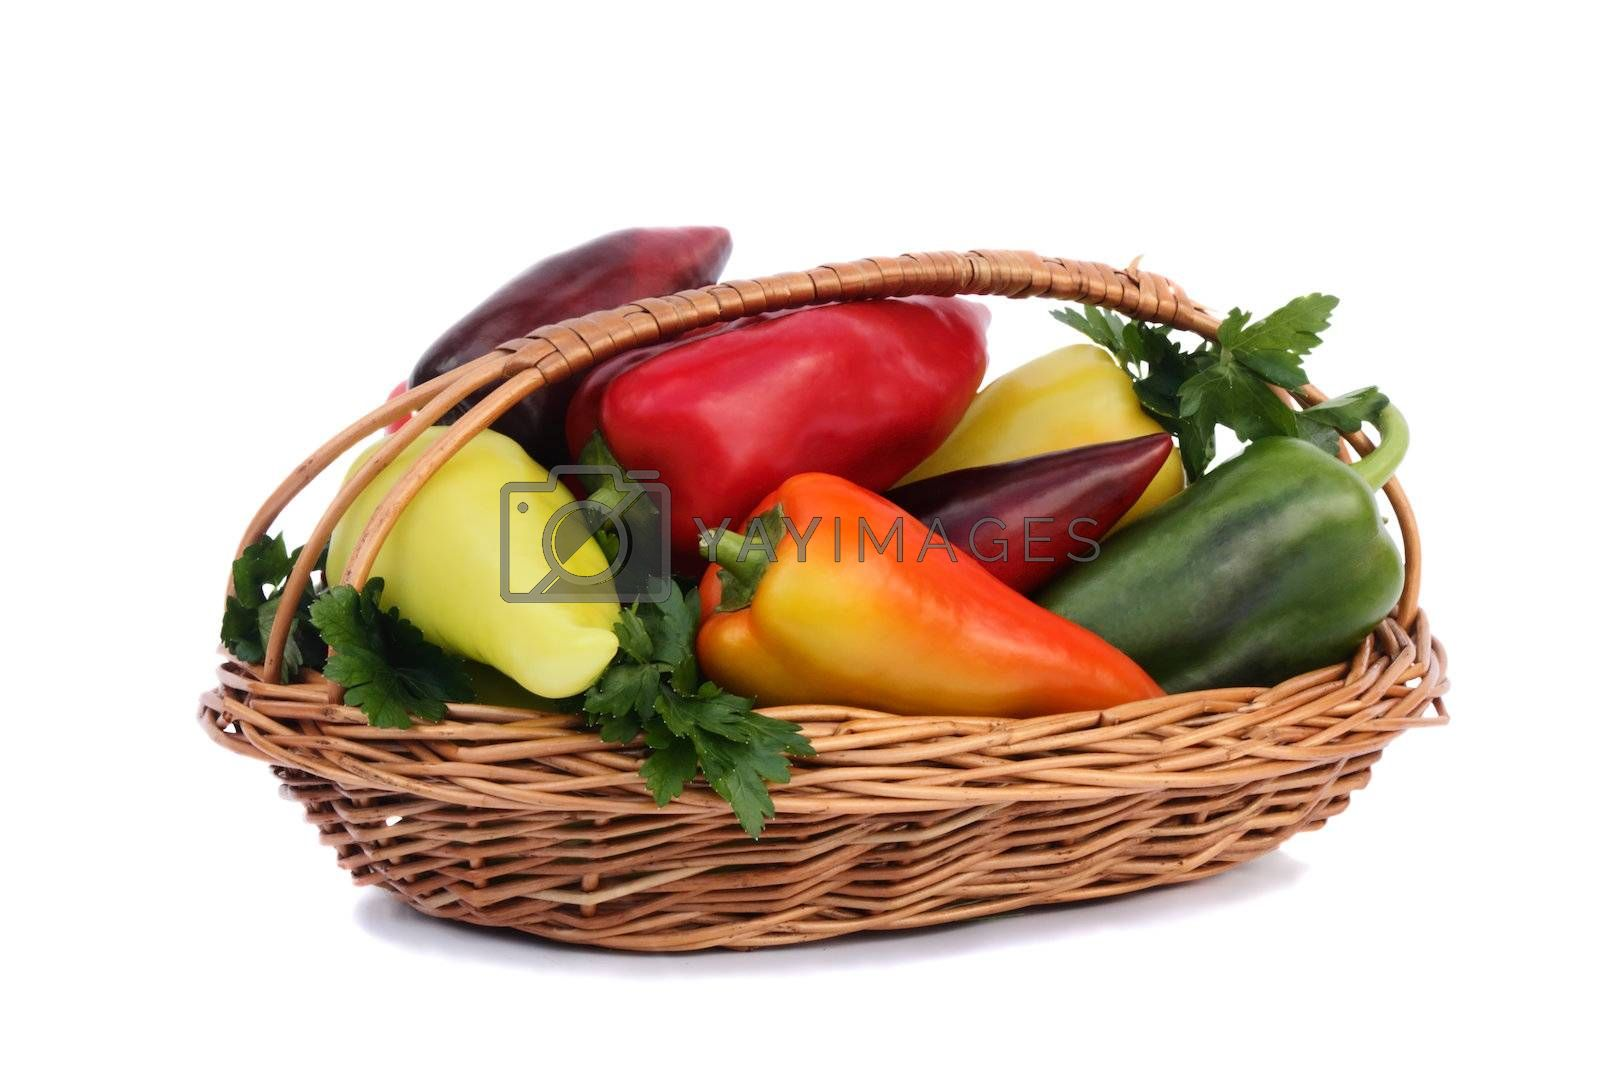 Wicker basket filled with ripe red, yellow, green peppers. Presented on a white background.